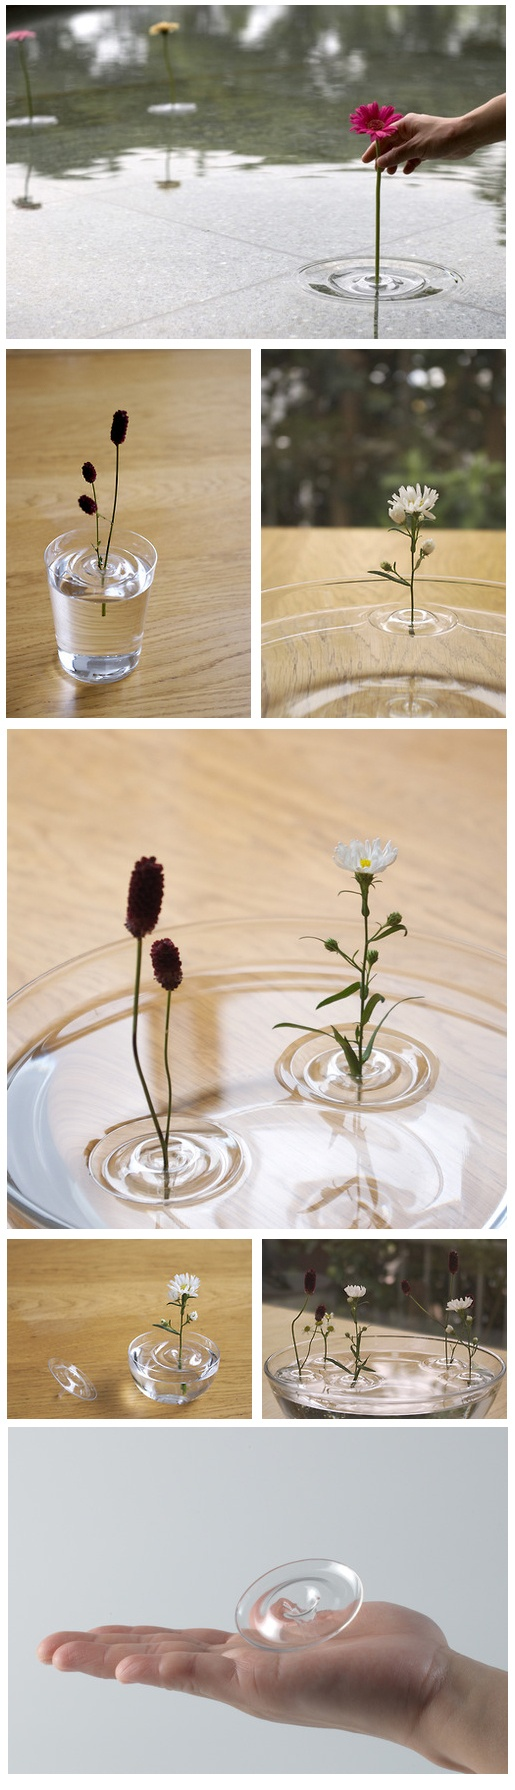 Flowers in vase change water - Floating Ripple Vases By Oodesign Art Design Flowers Fill Your Favorite Container With